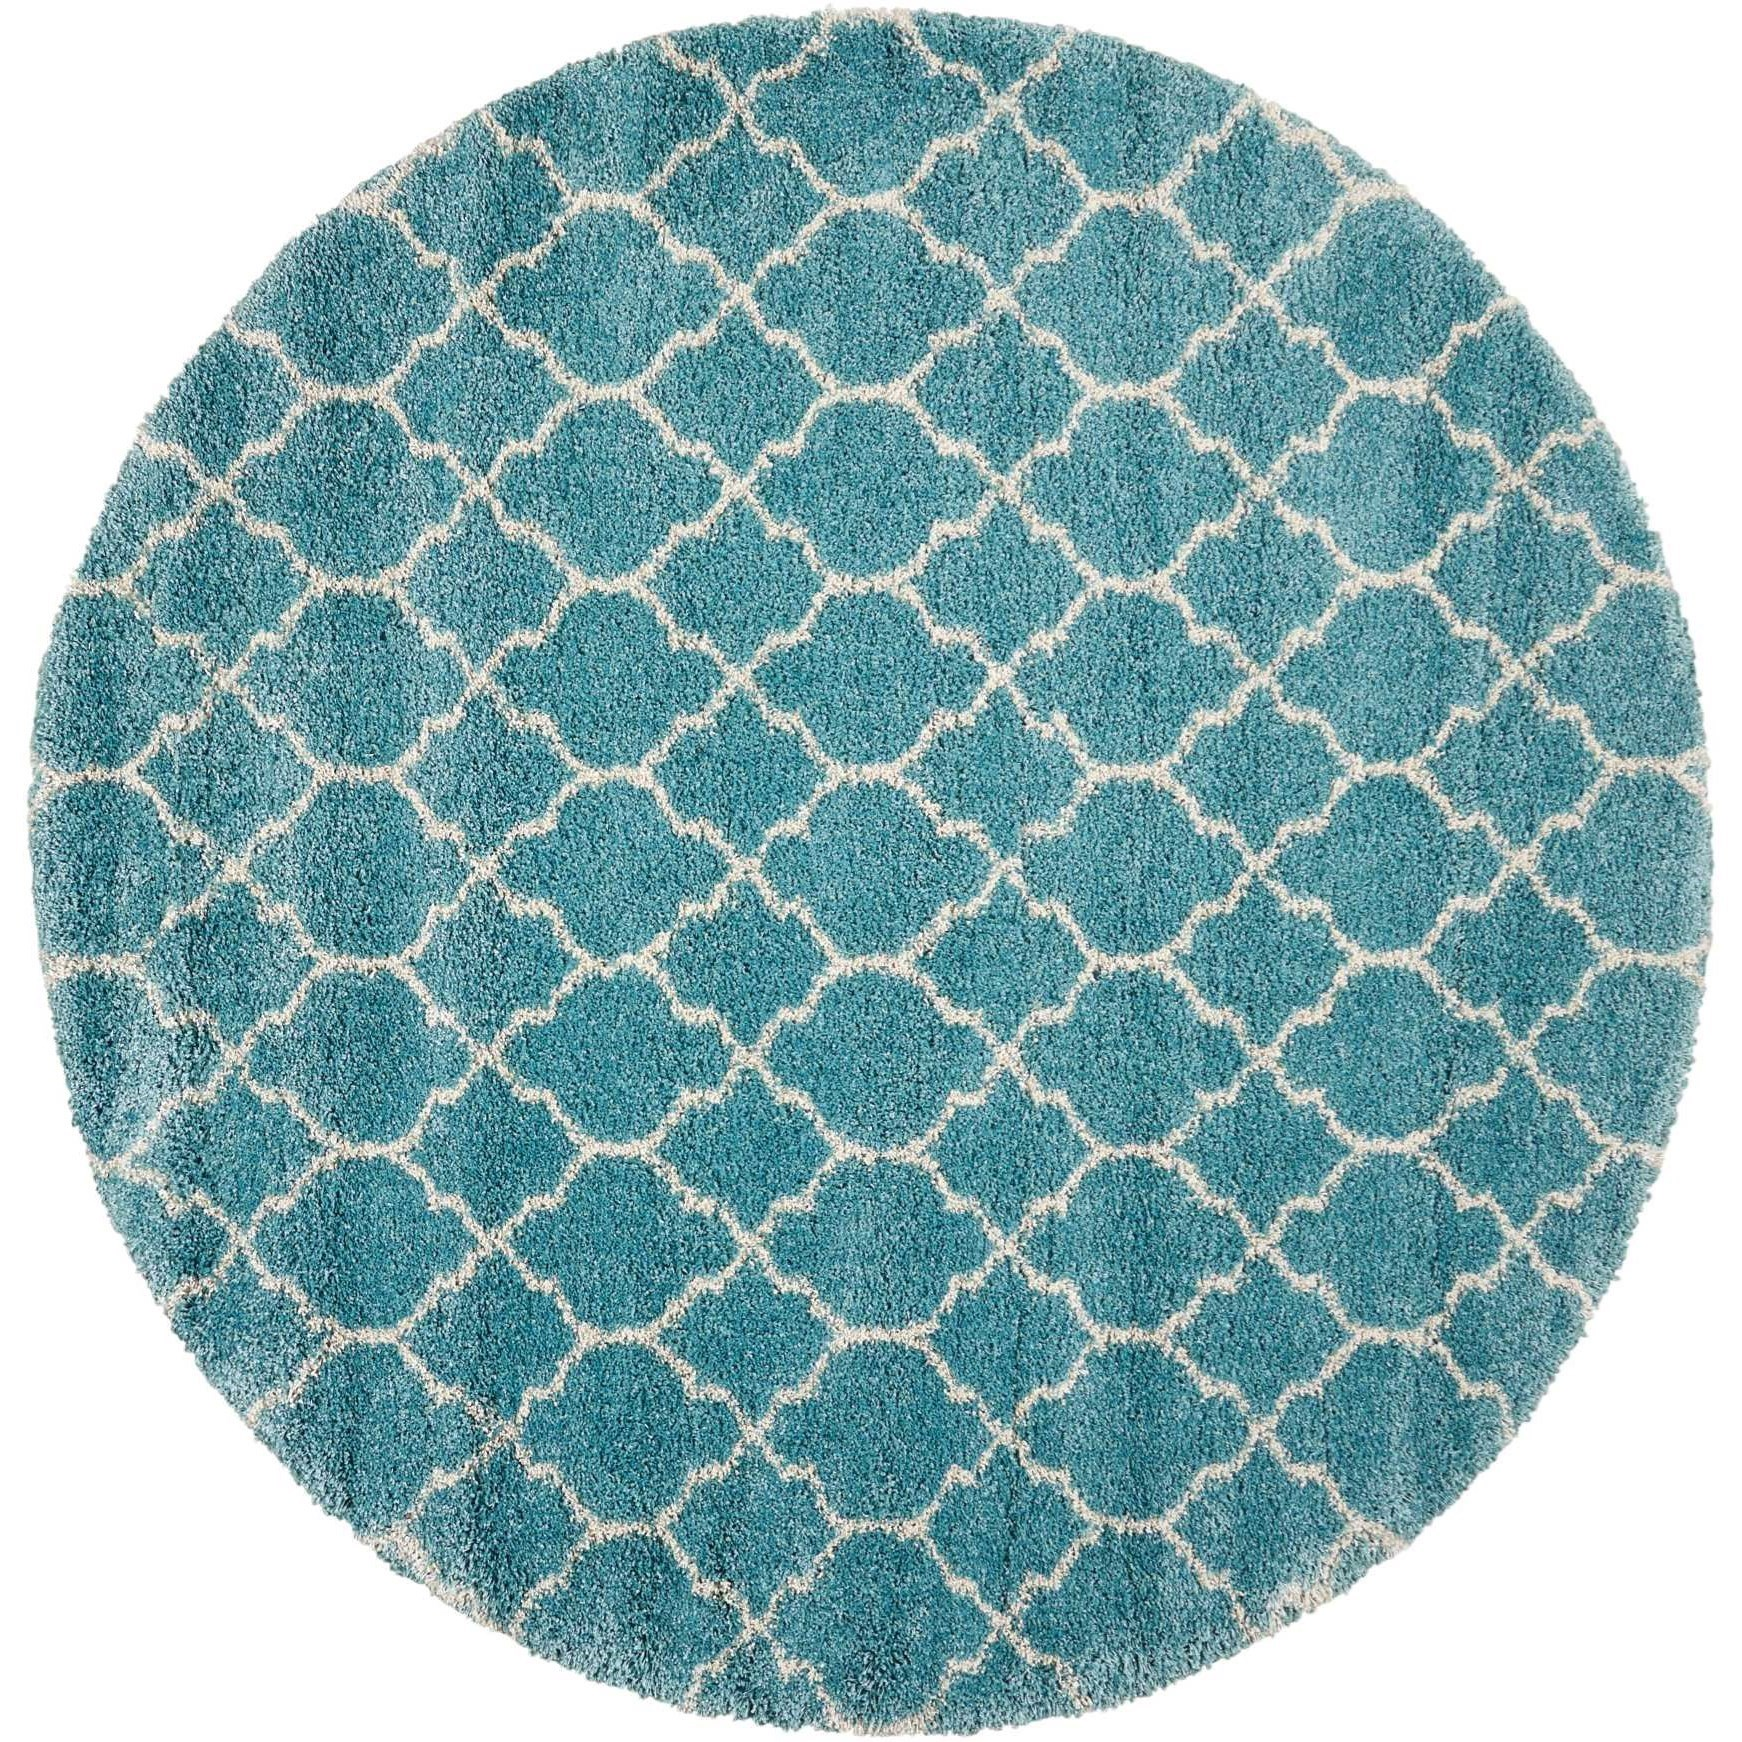 """Amore 6'7"""" x 6'7"""" Aqua Round Rug by Nourison at Home Collections Furniture"""